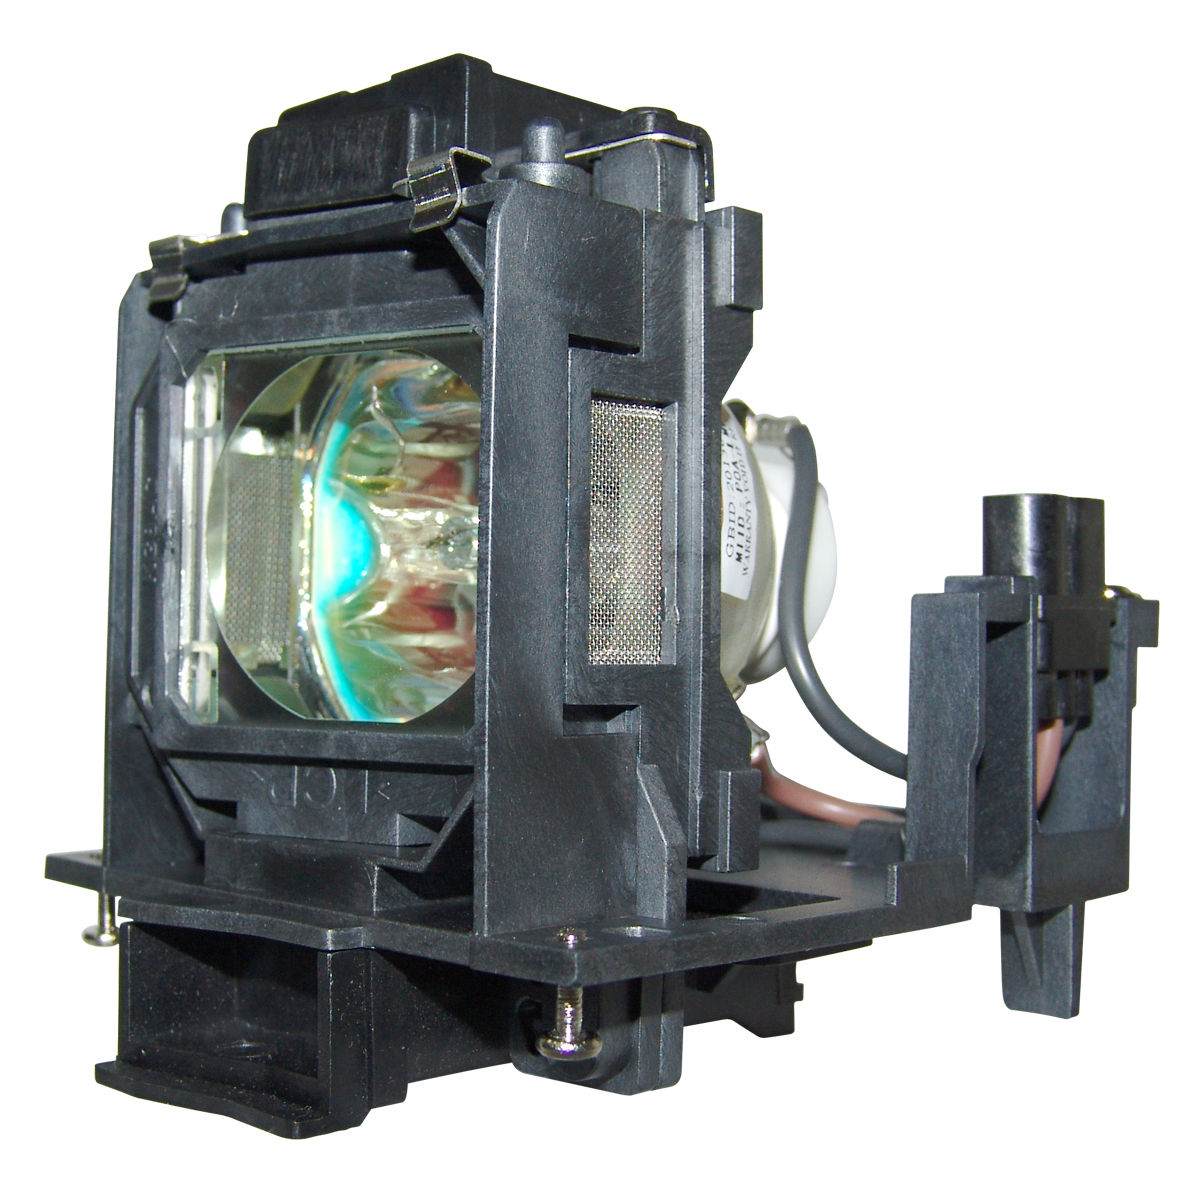 Projector Lamp Bulb ET-LAC100 ETLAC100 for Panasonic PT-CW230E PT-CW230 PT-CX200 PT-CX200U with housing pt ae1000 pt ae2000 pt ae3000 projector lamp bulb et lae1000 for panasonic high quality totally new